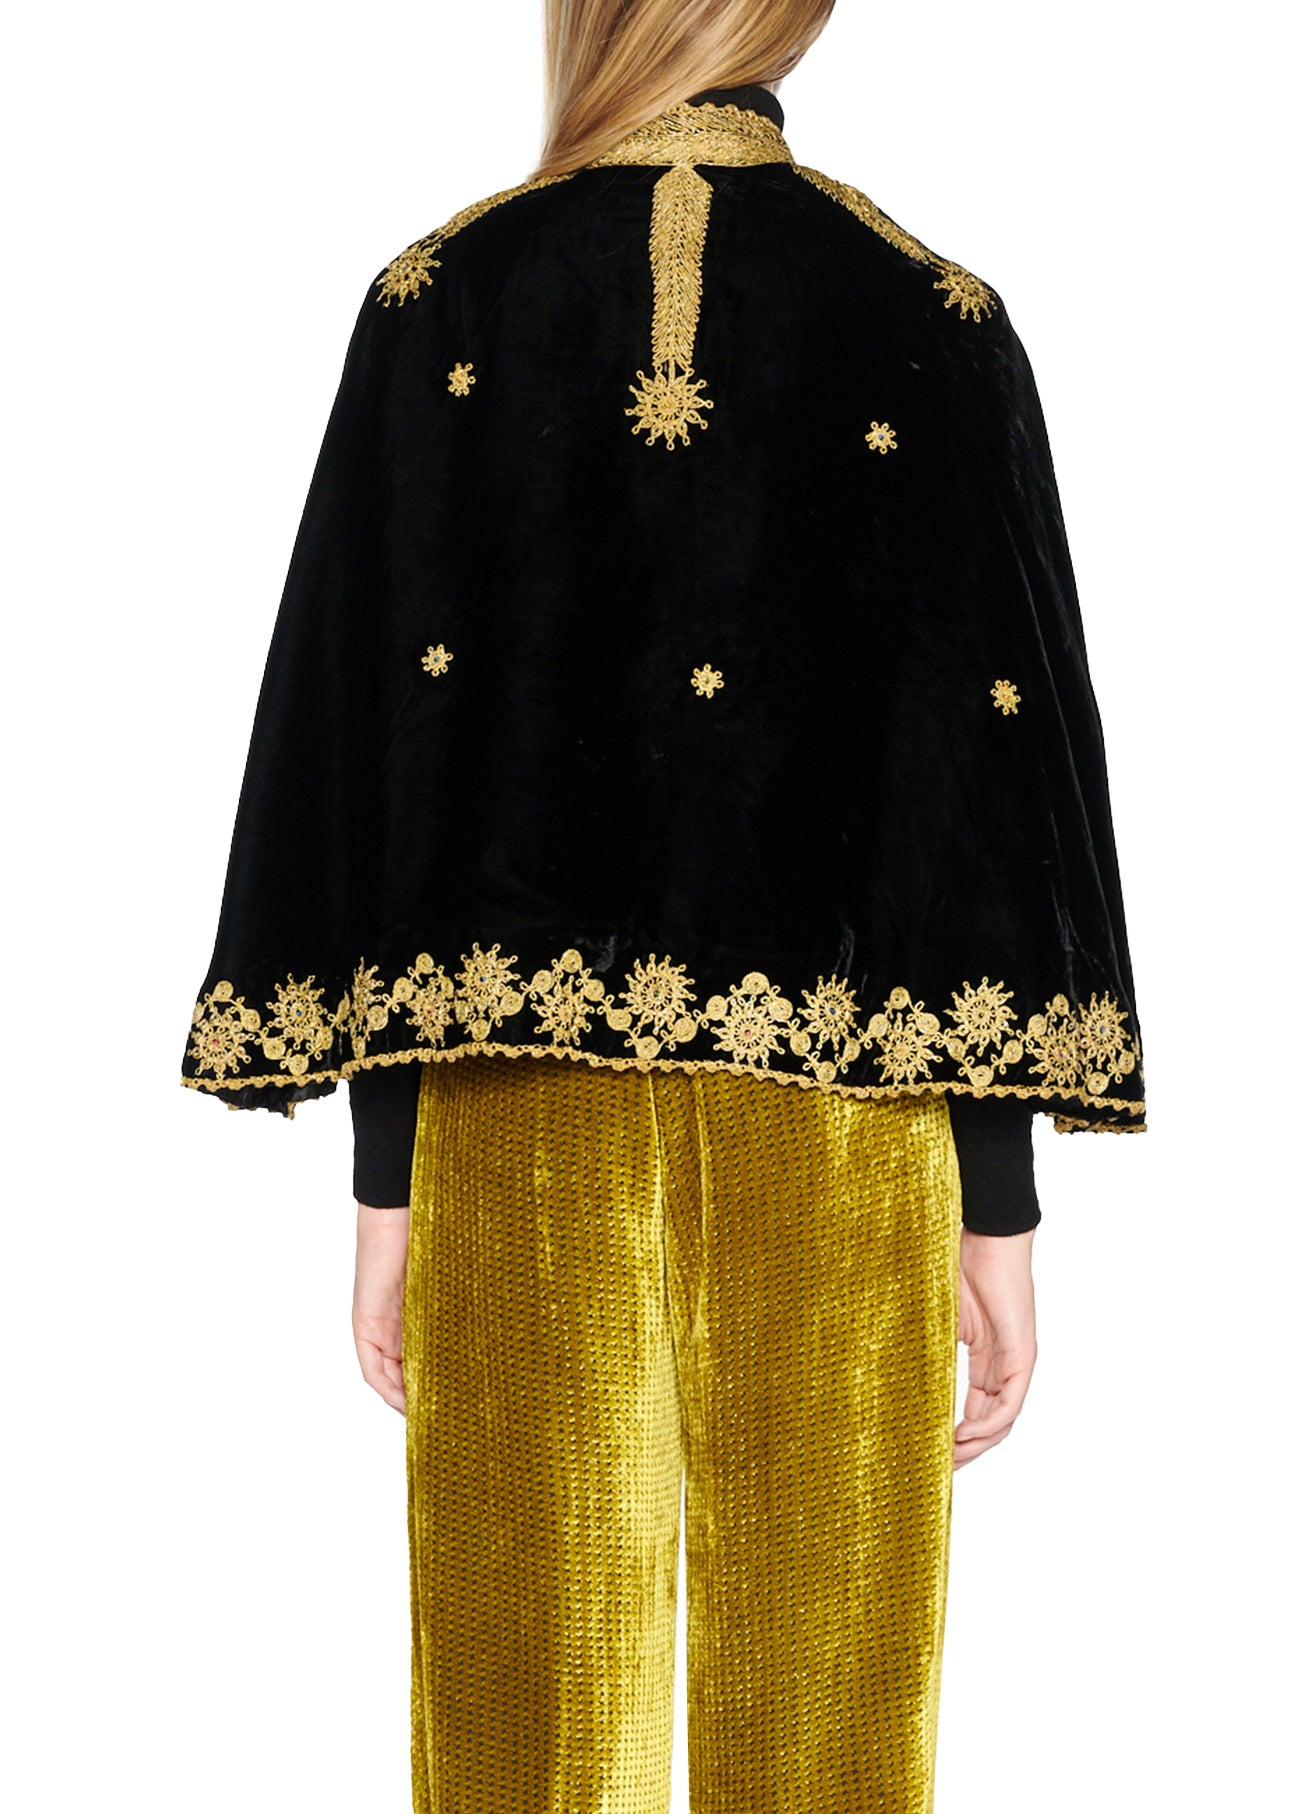 BLACK & GOLD 'MARRAKECH' CAPELET - Women's Jackets & Coats - Libertine